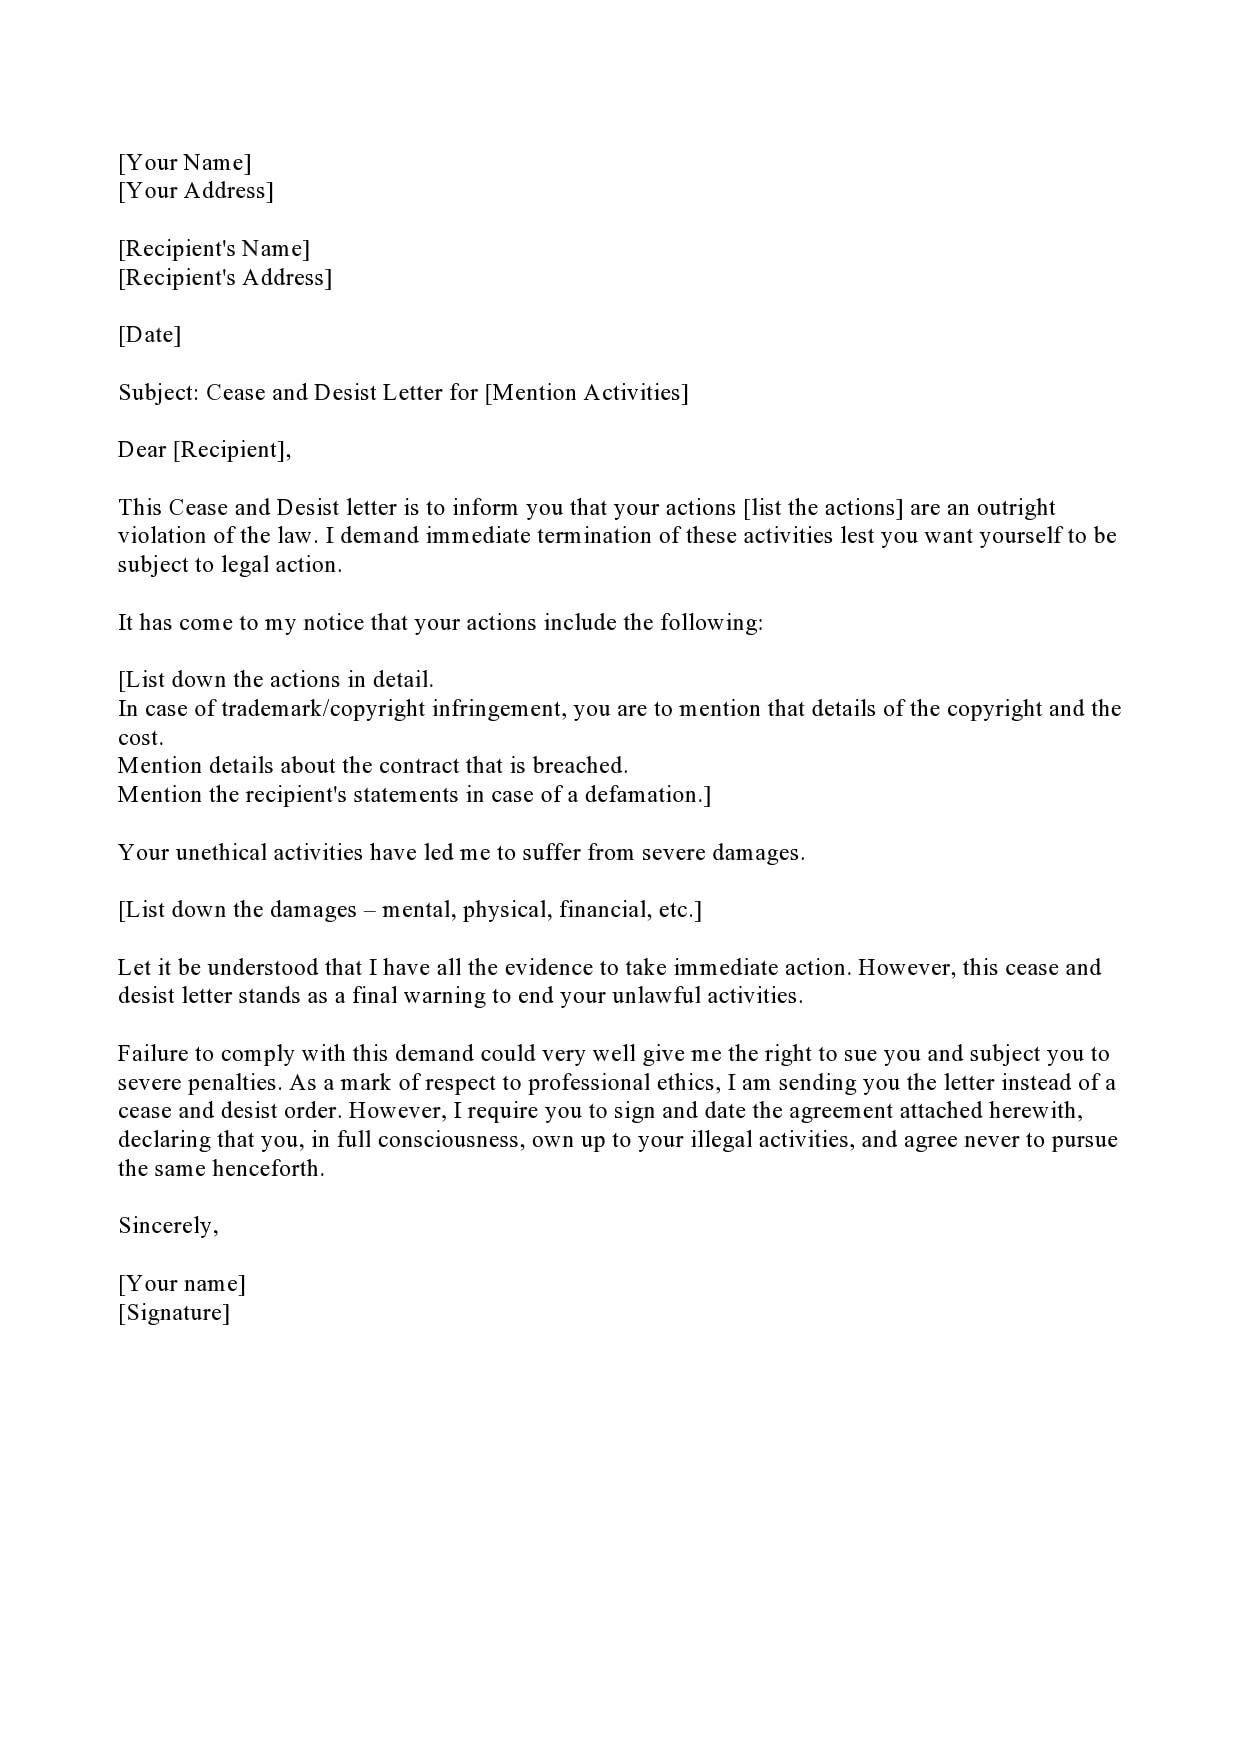 Cease And Desist Letter Copyright Infringement Template from templatearchive.com